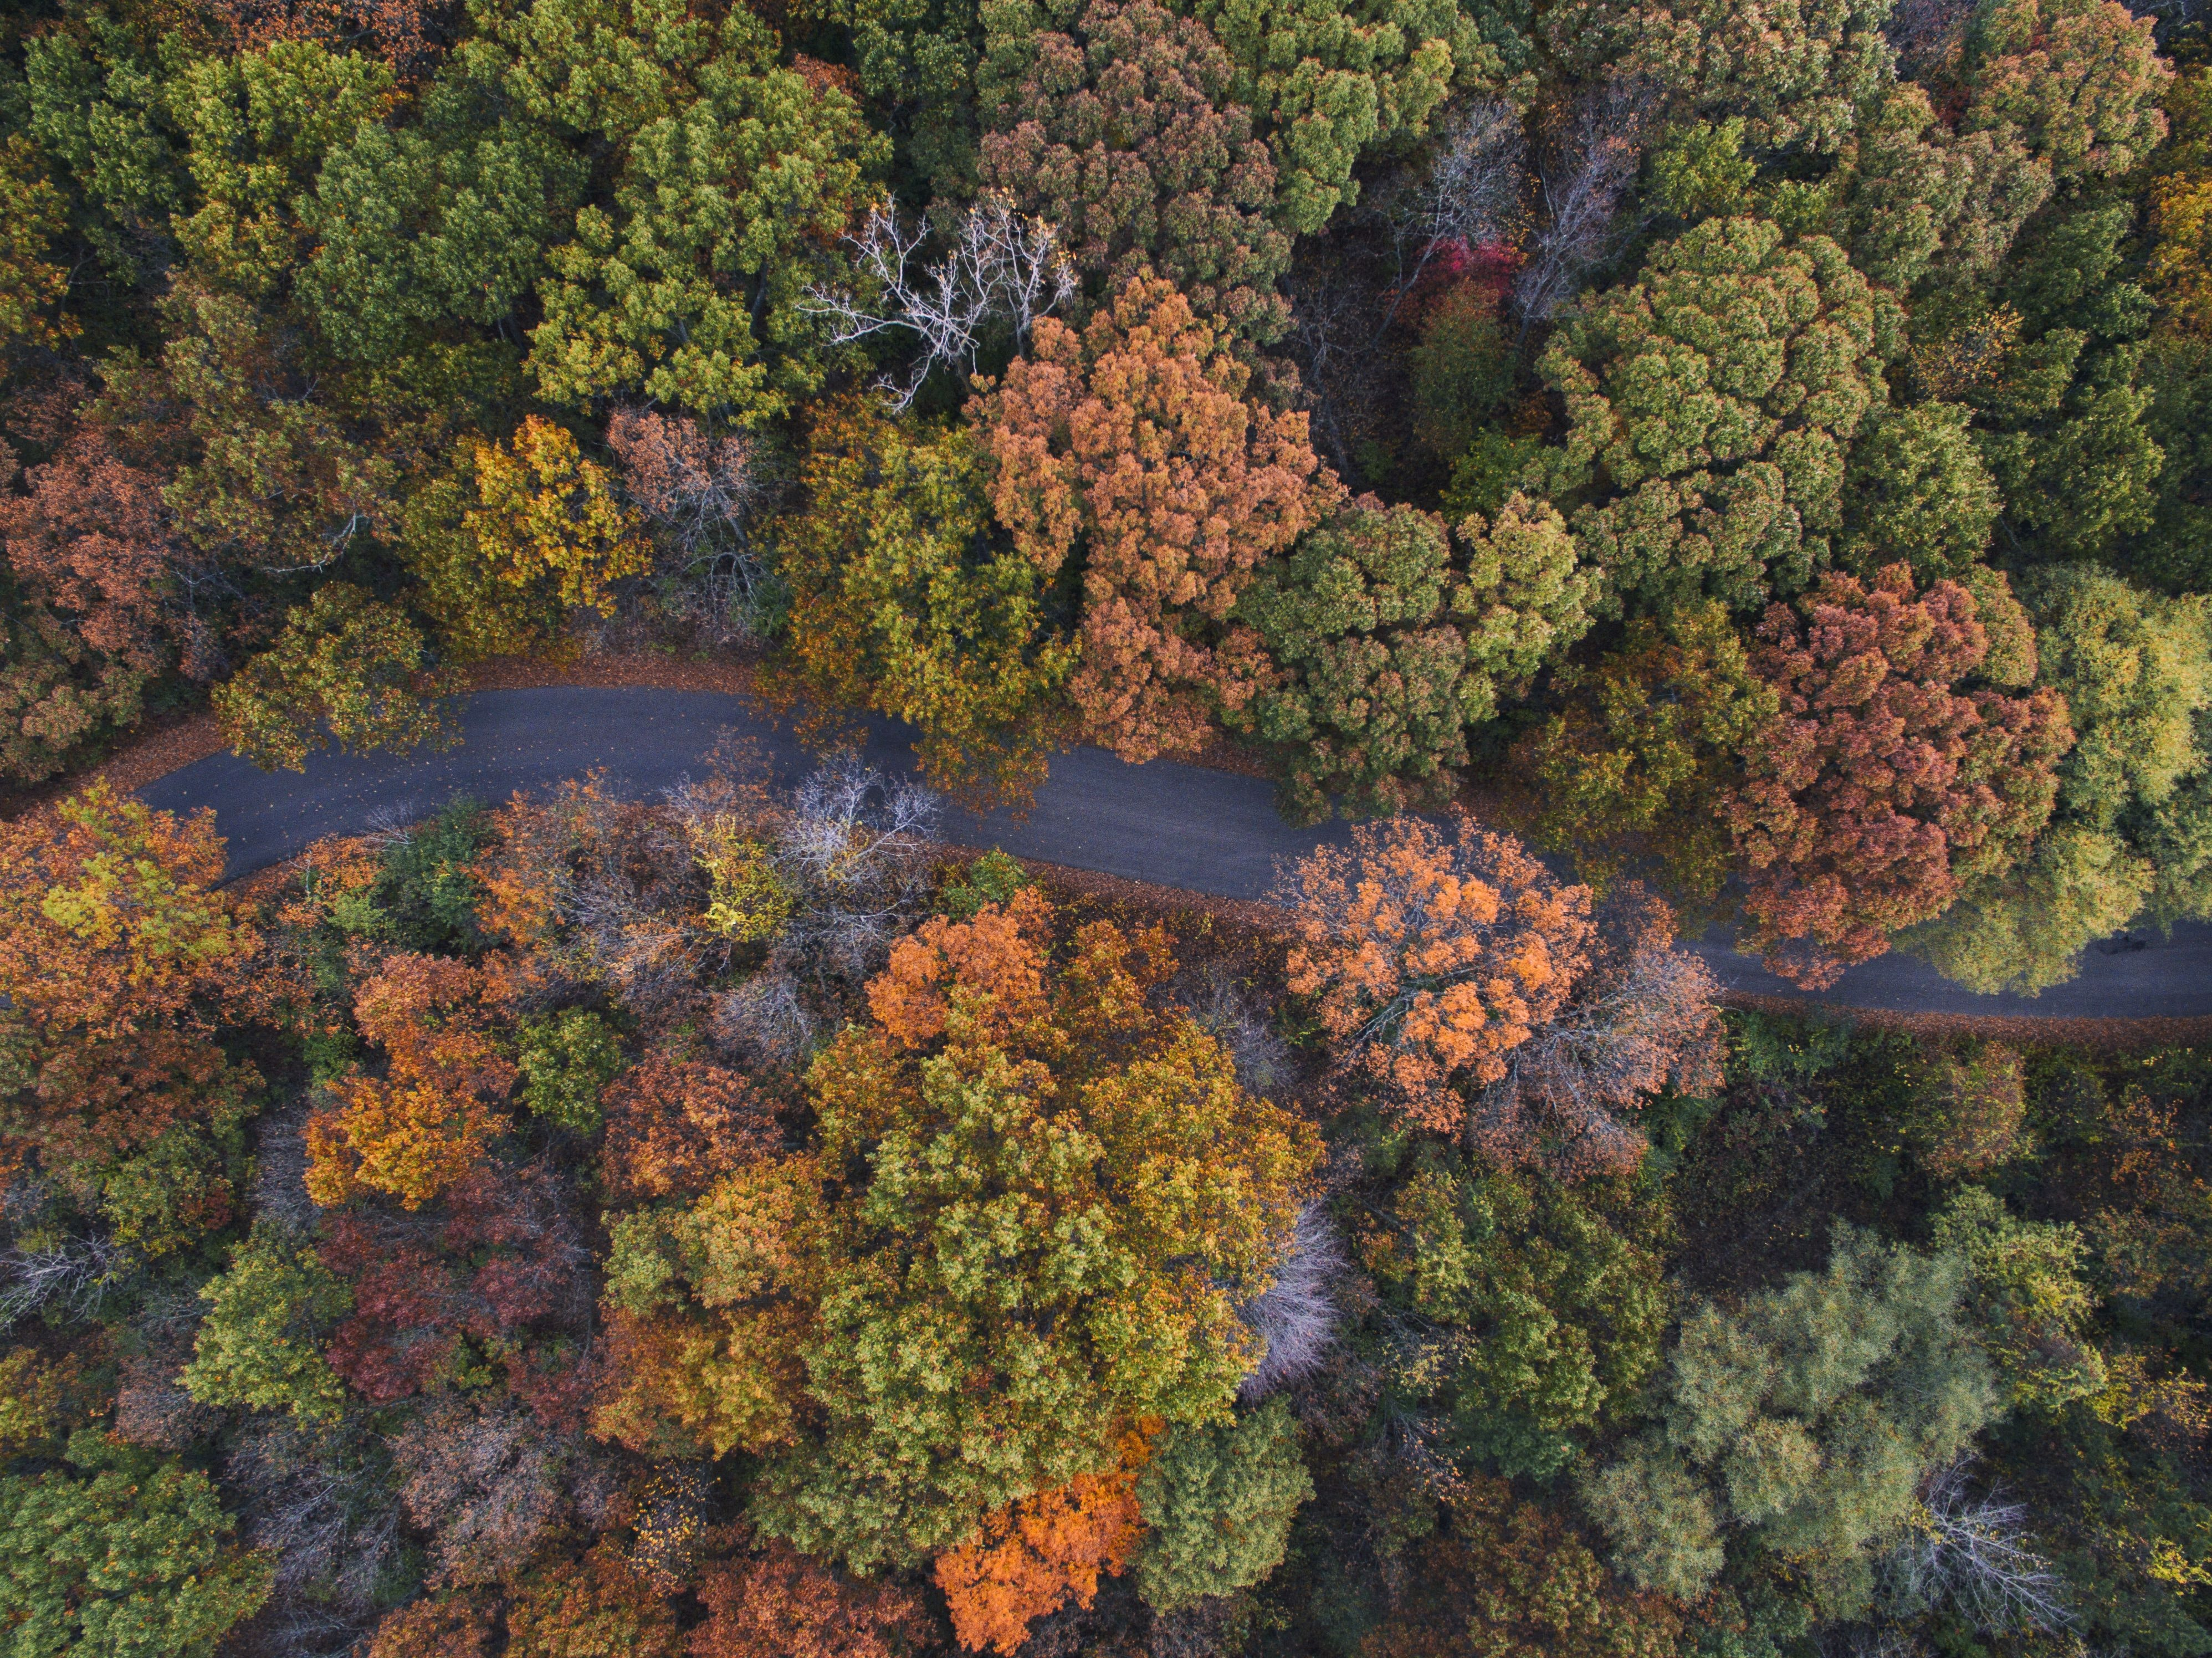 aerial photo of gray winding road in the middle of assorted-color leaf trees